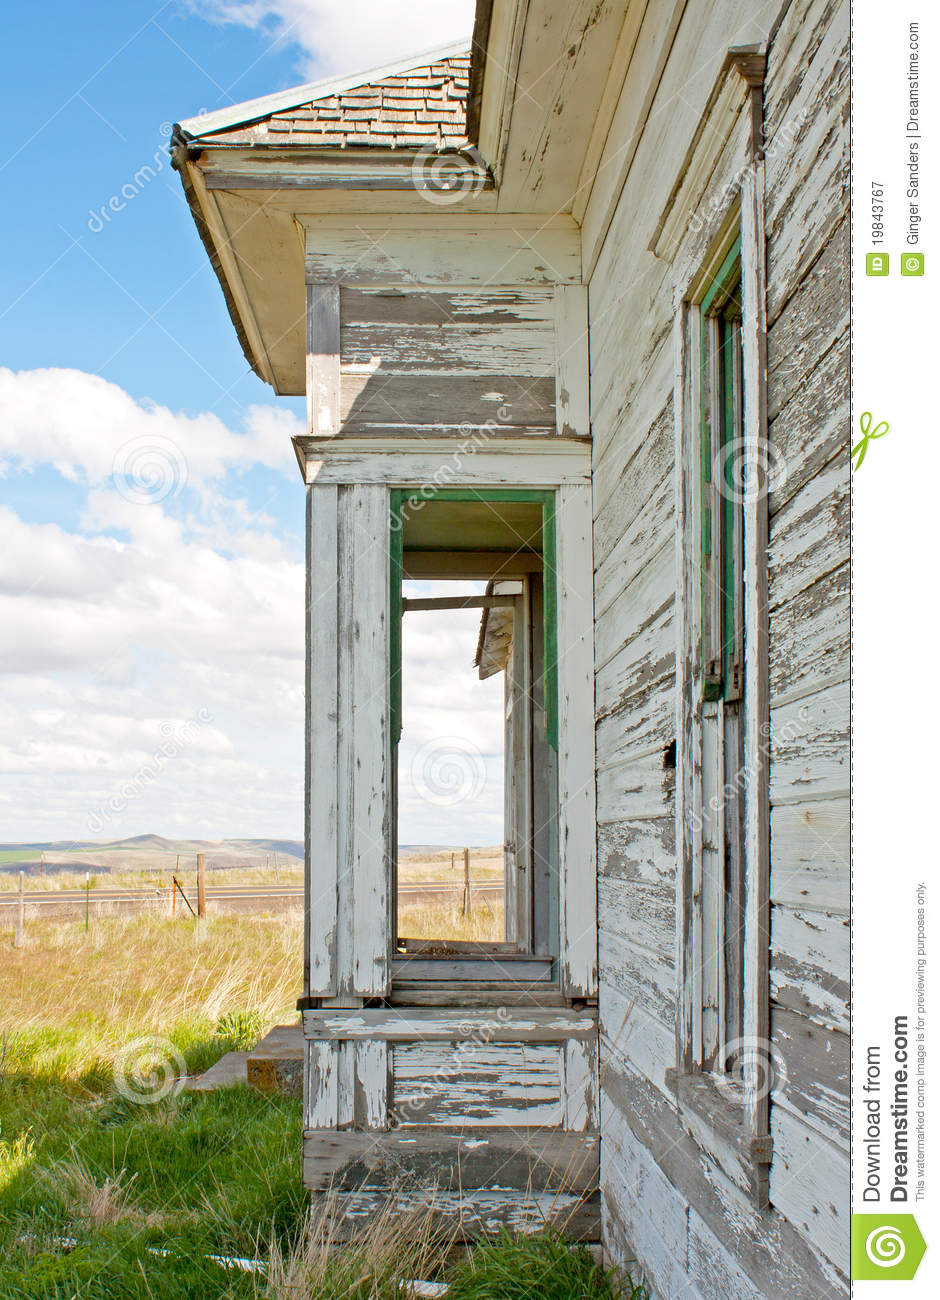 Porch of Abandoned House